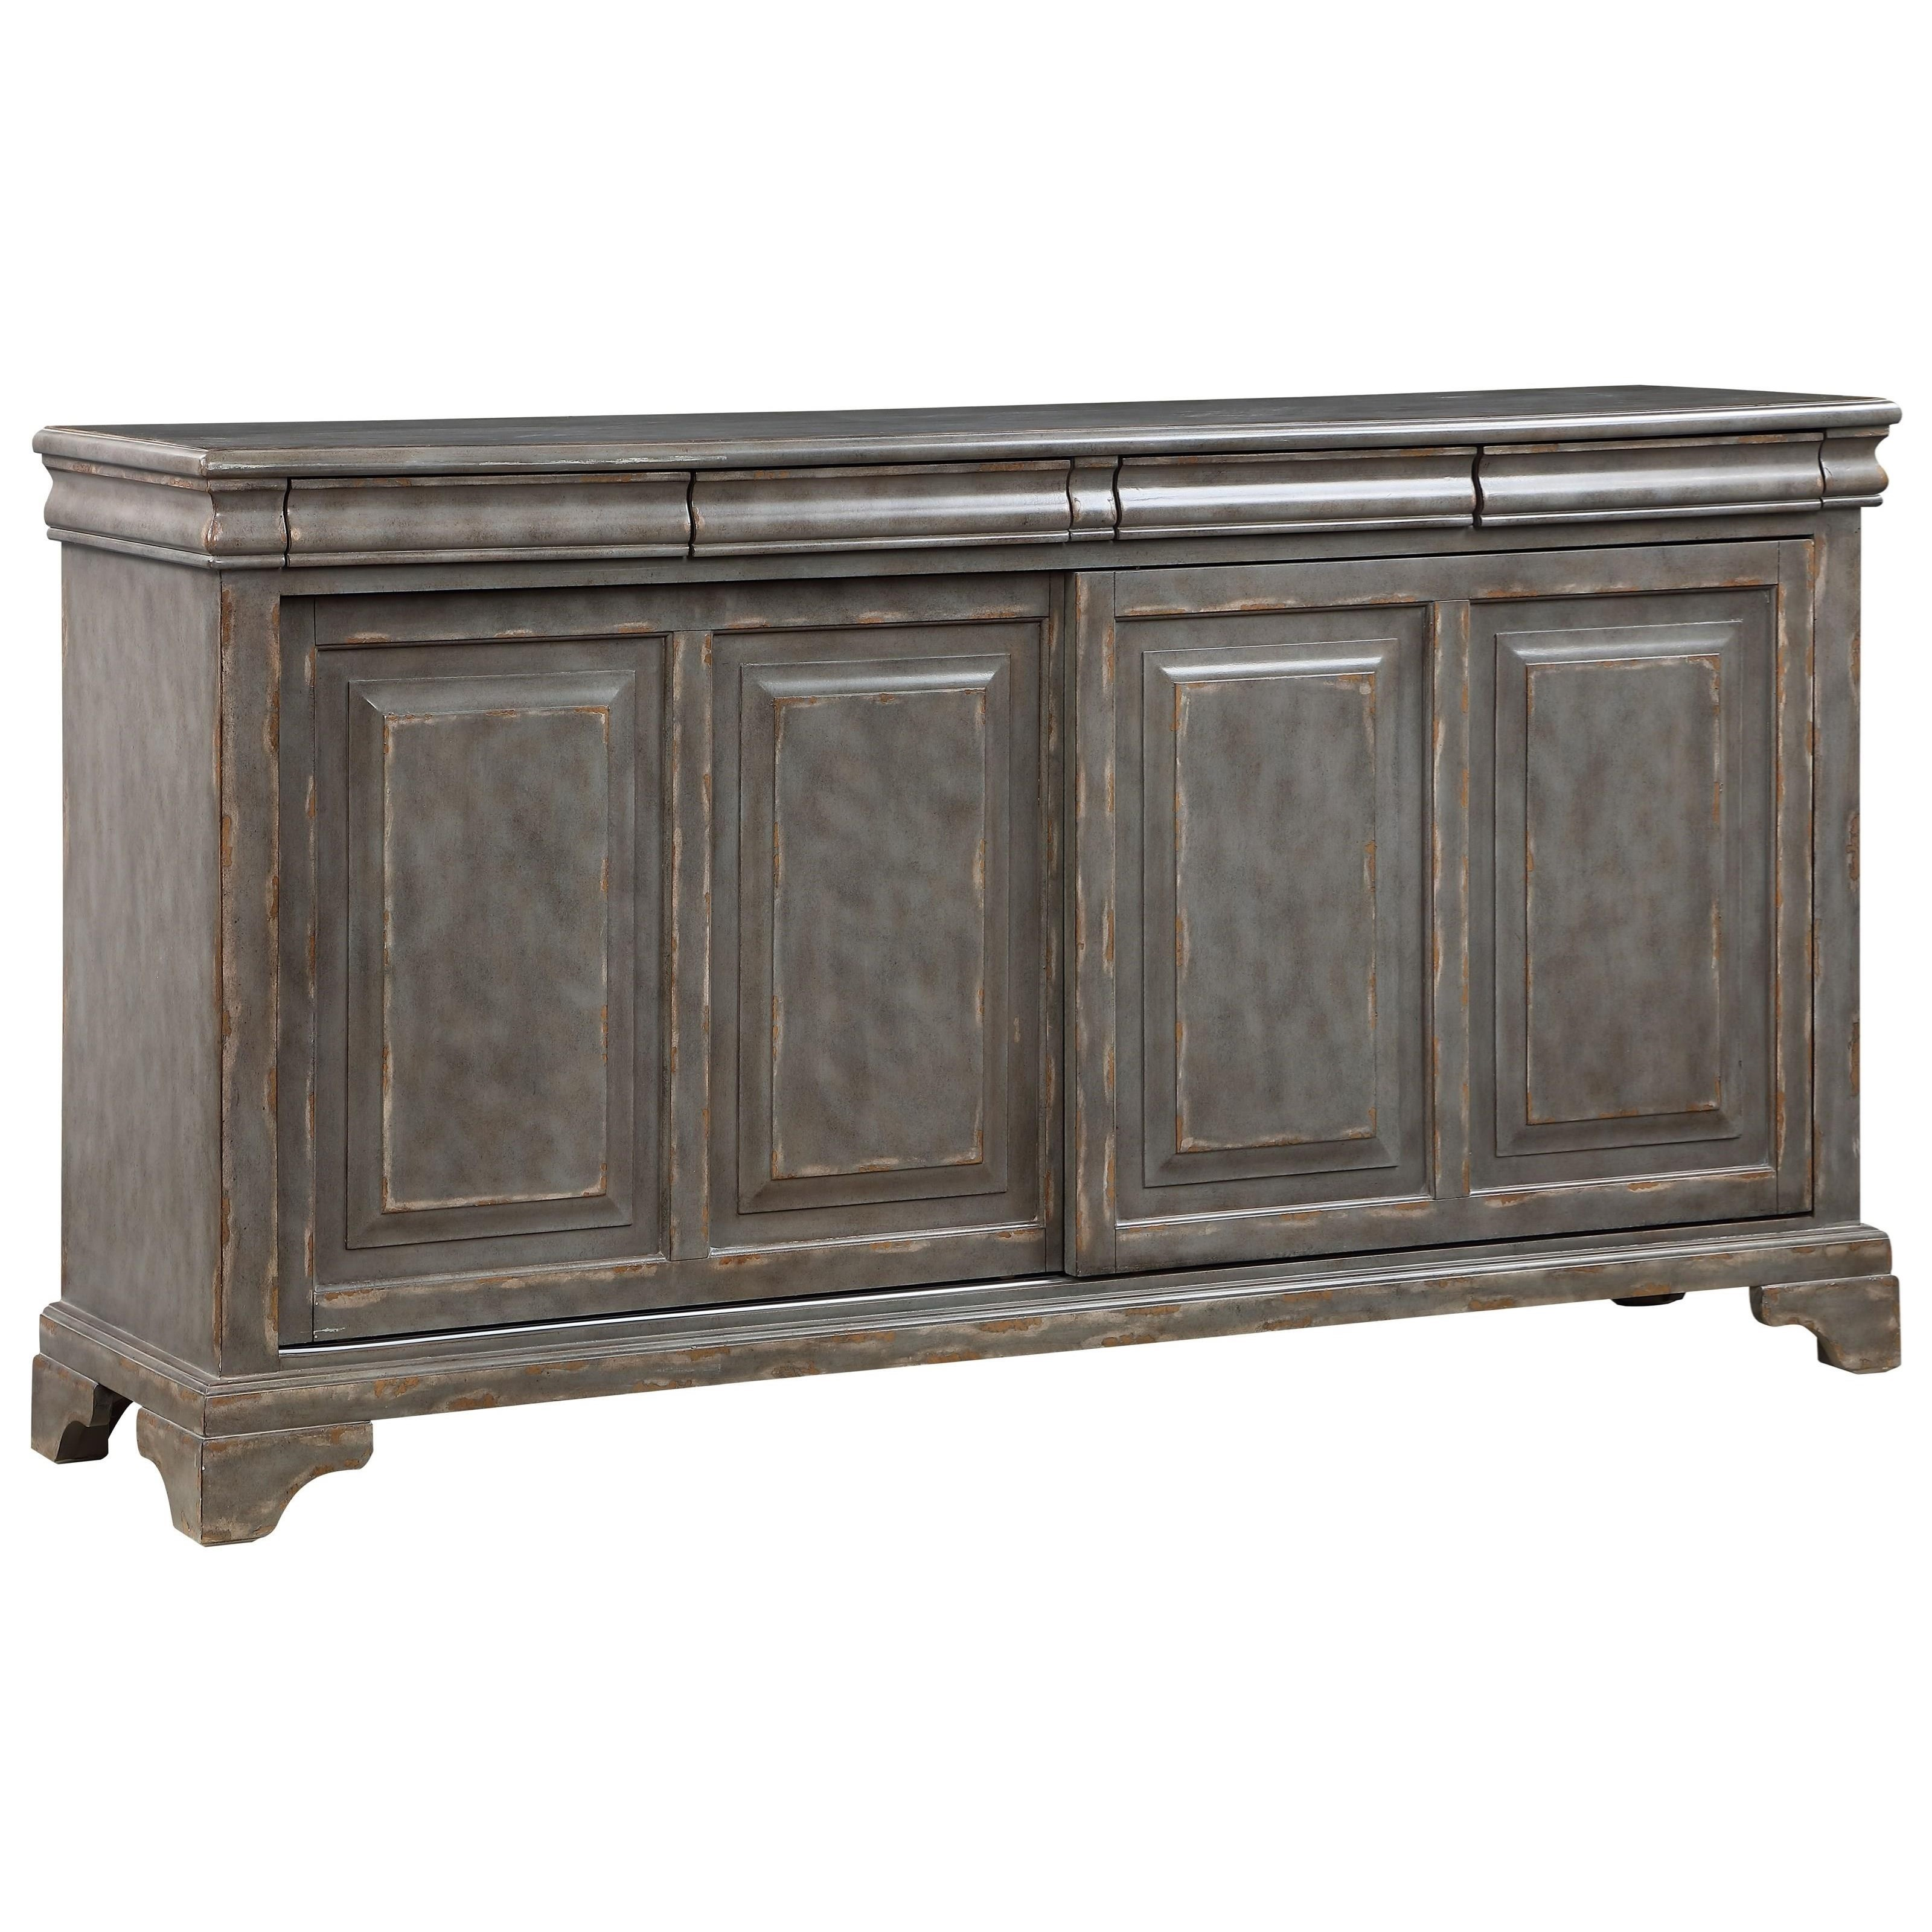 2-Sliding Door 4-Drawer Accent Cabinet